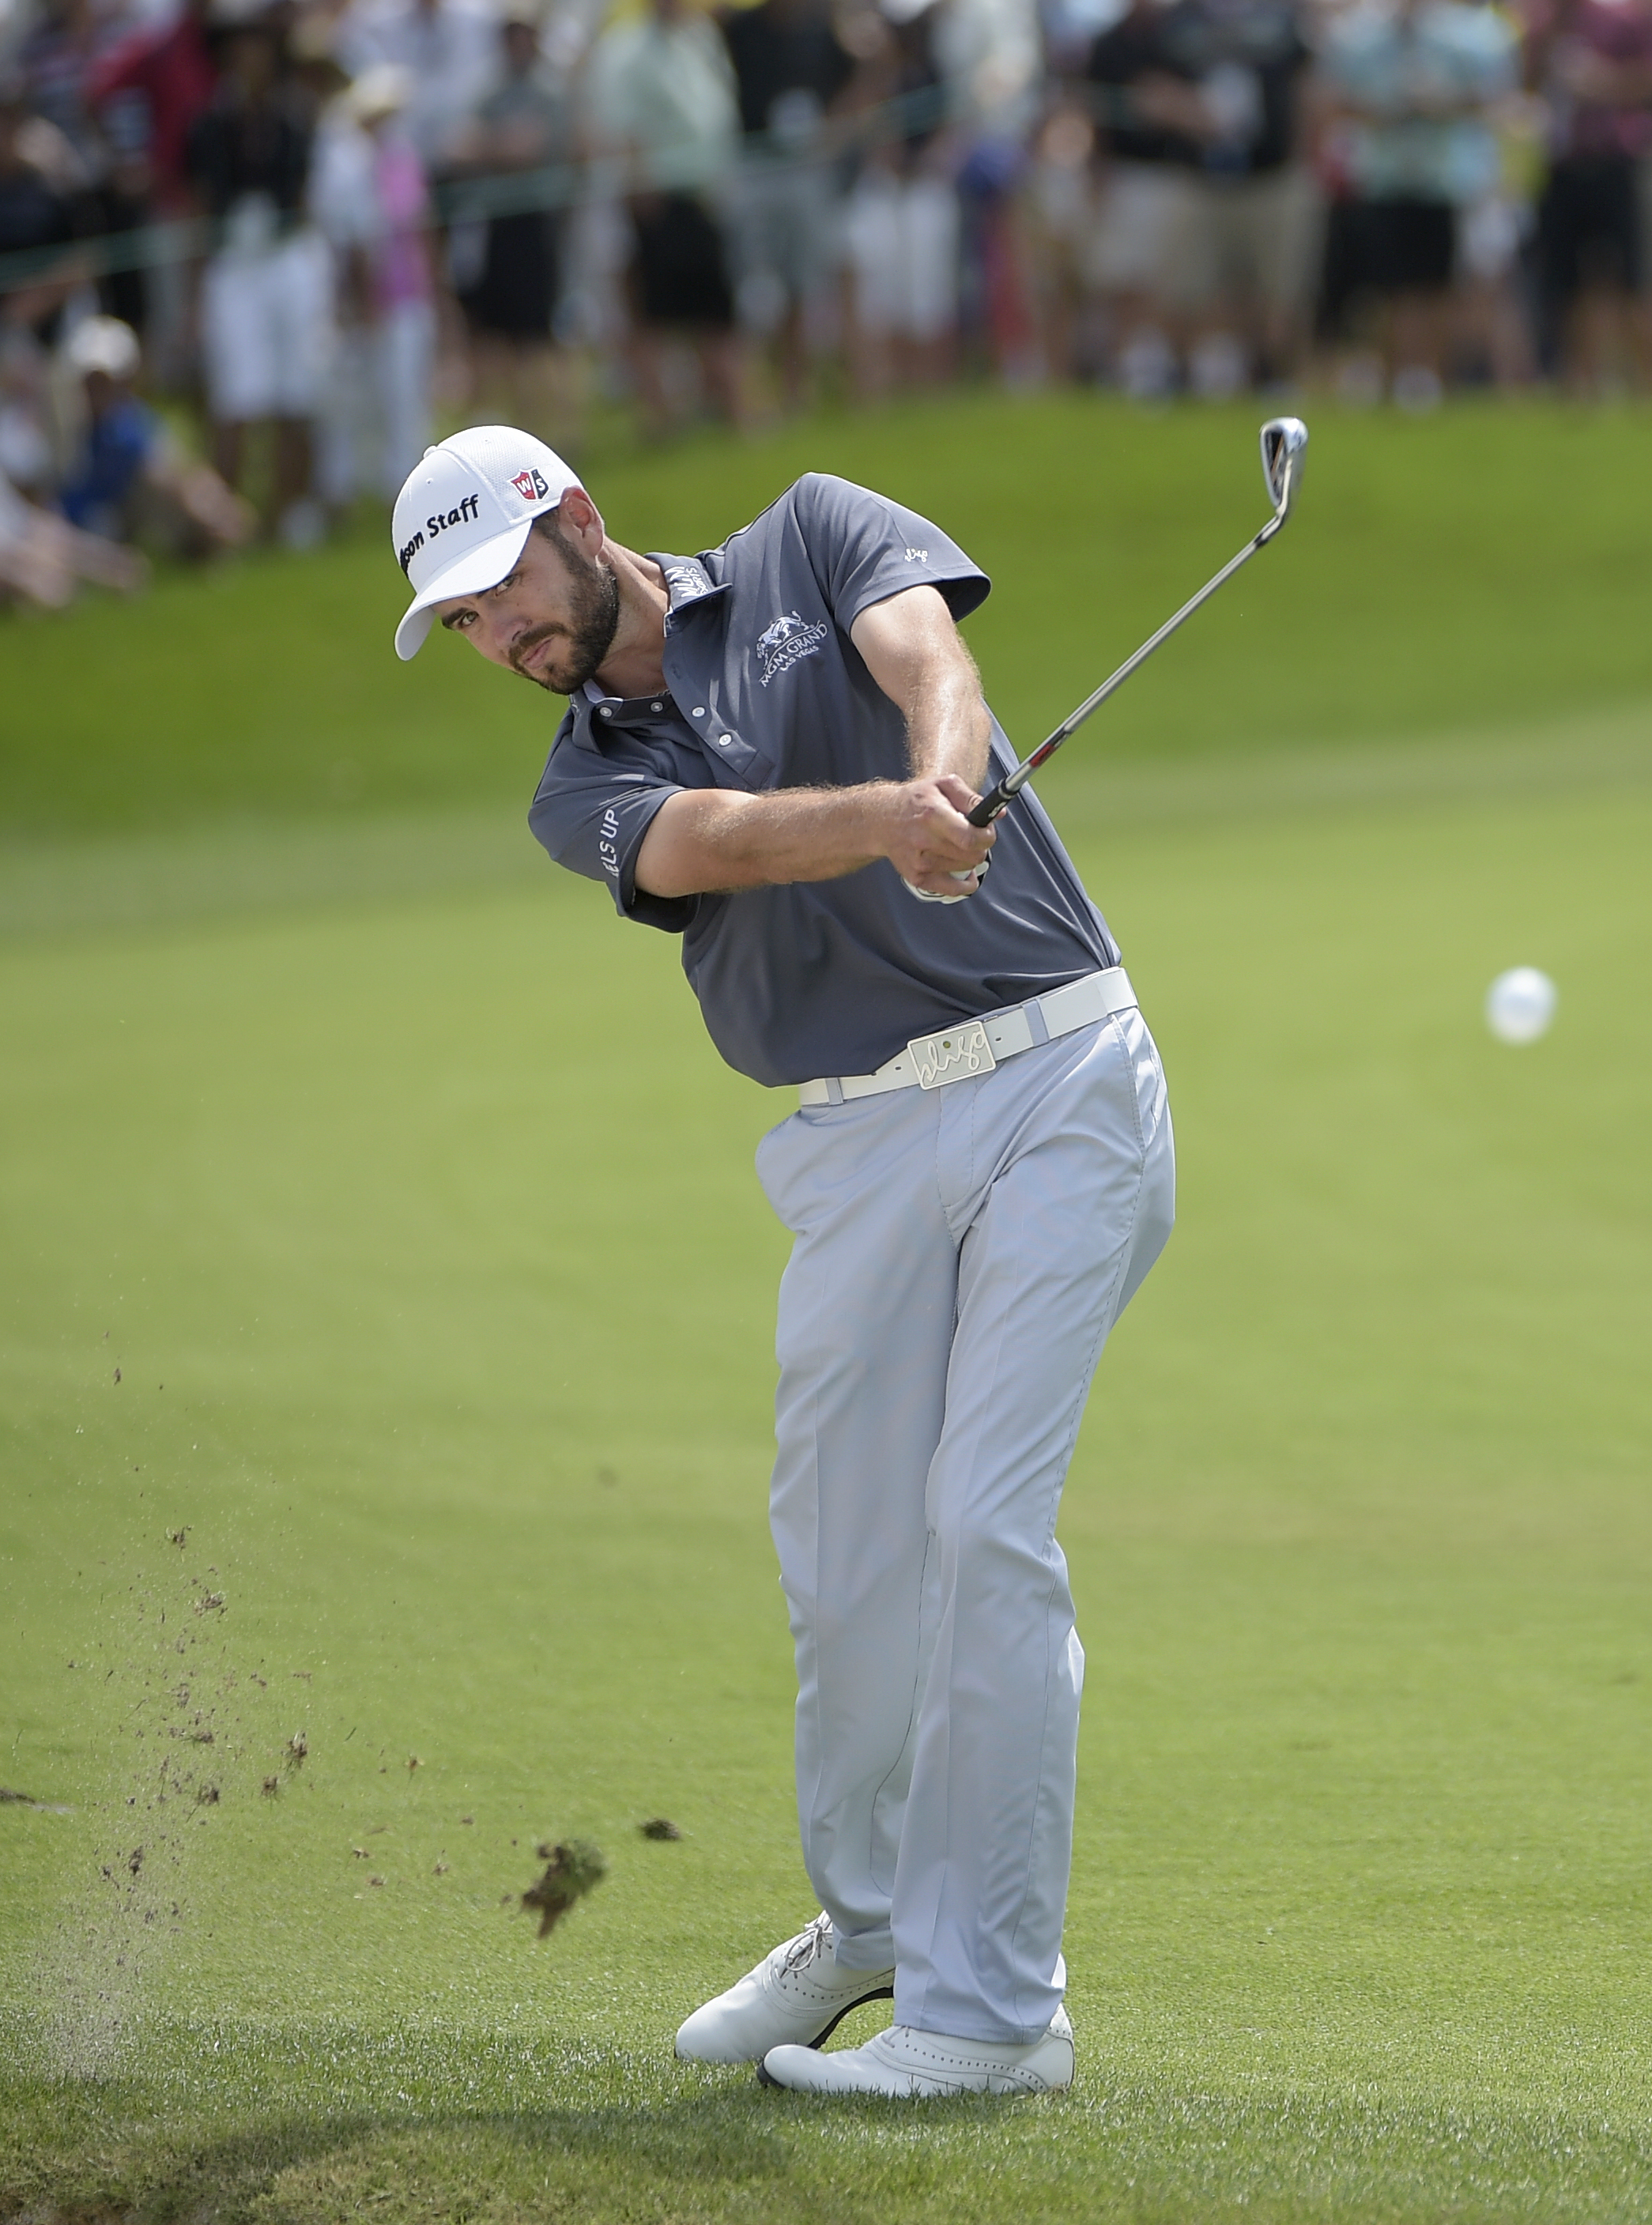 Troy Merritt hits from the first fairway during the final round of the Arnold Palmer Invitational golf tournament in Orlando, Fla., Sunday, March 20, 2016. (AP Photo/Phelan M. Ebenhack)